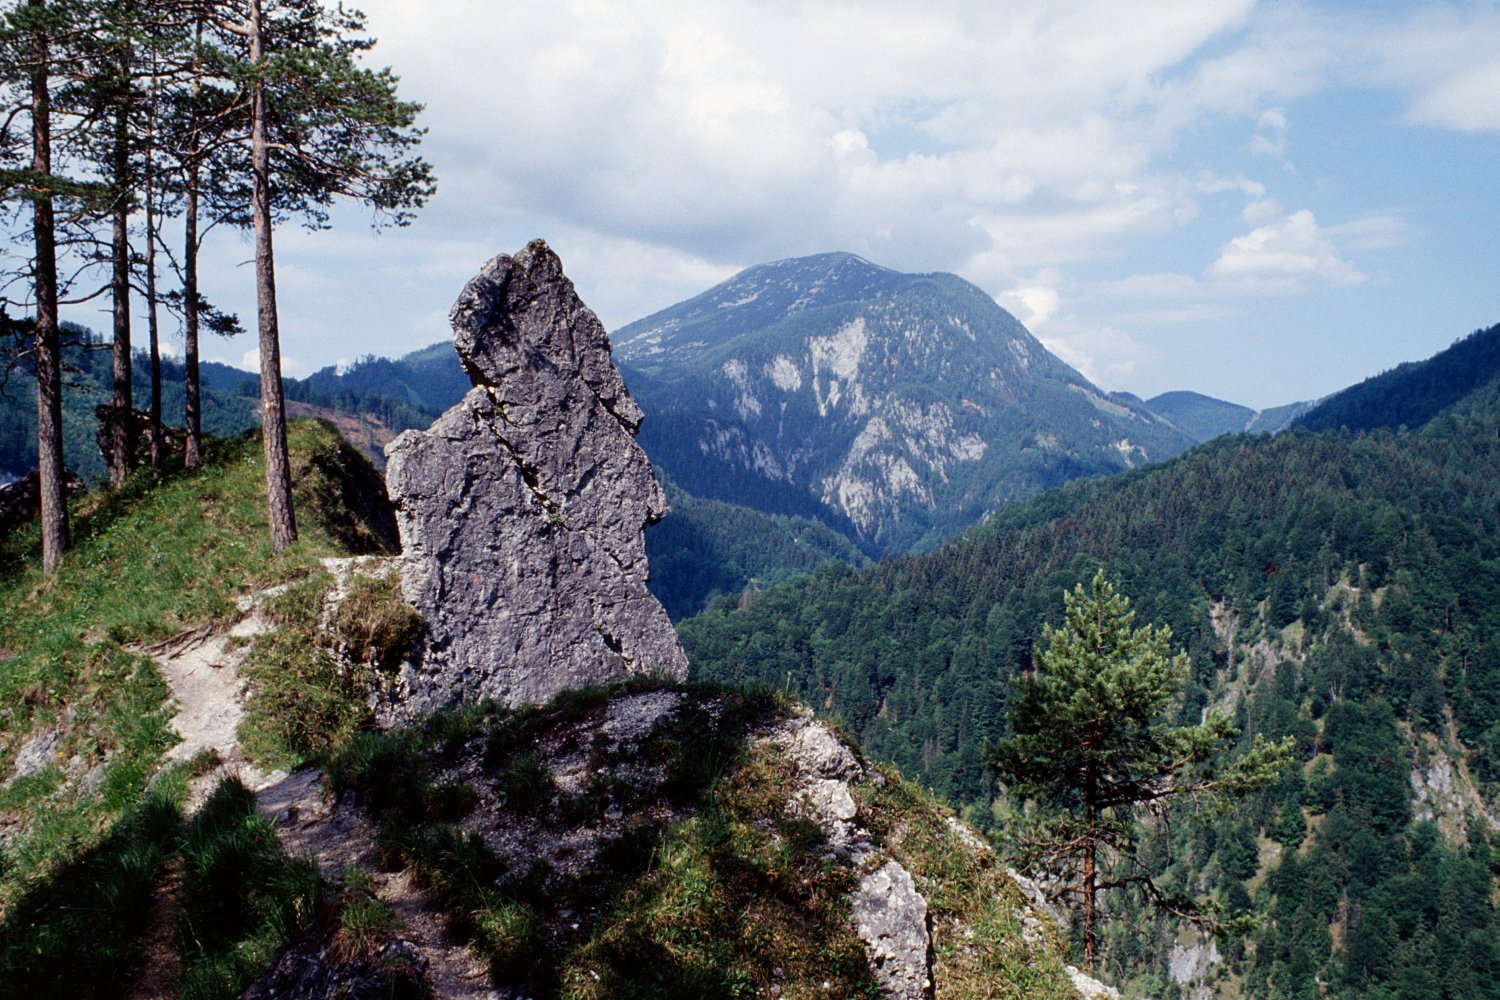 "Kalkalpen National Park in Austria – a wilderness core (Credit: ""Hintergebirge 01"" by Herbert Ortner, Überraschungsbilder - Self-published work by Herbert Ortner, transferred by Überraschungsbilder. Licensed under CC BY 3.0 via Wikimedia Commons)"